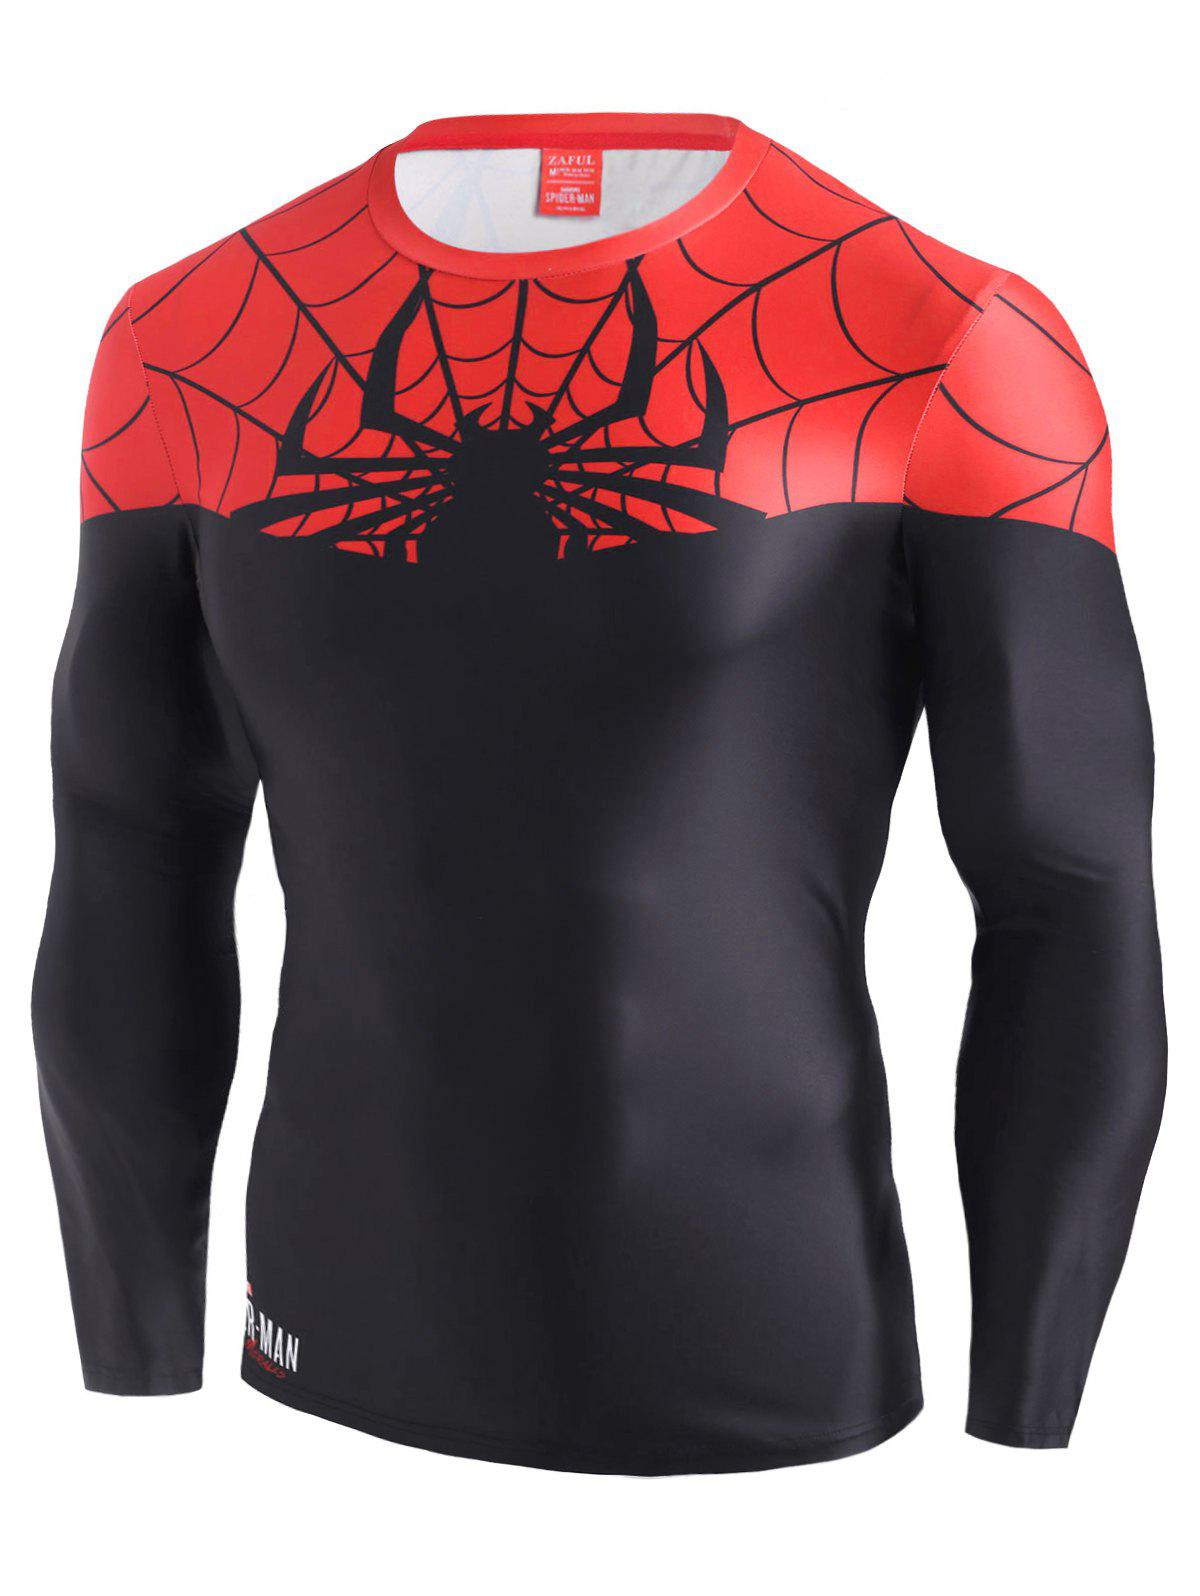 T-shirt Marvel Spider-Man en Blocs de Couleurs Noir S